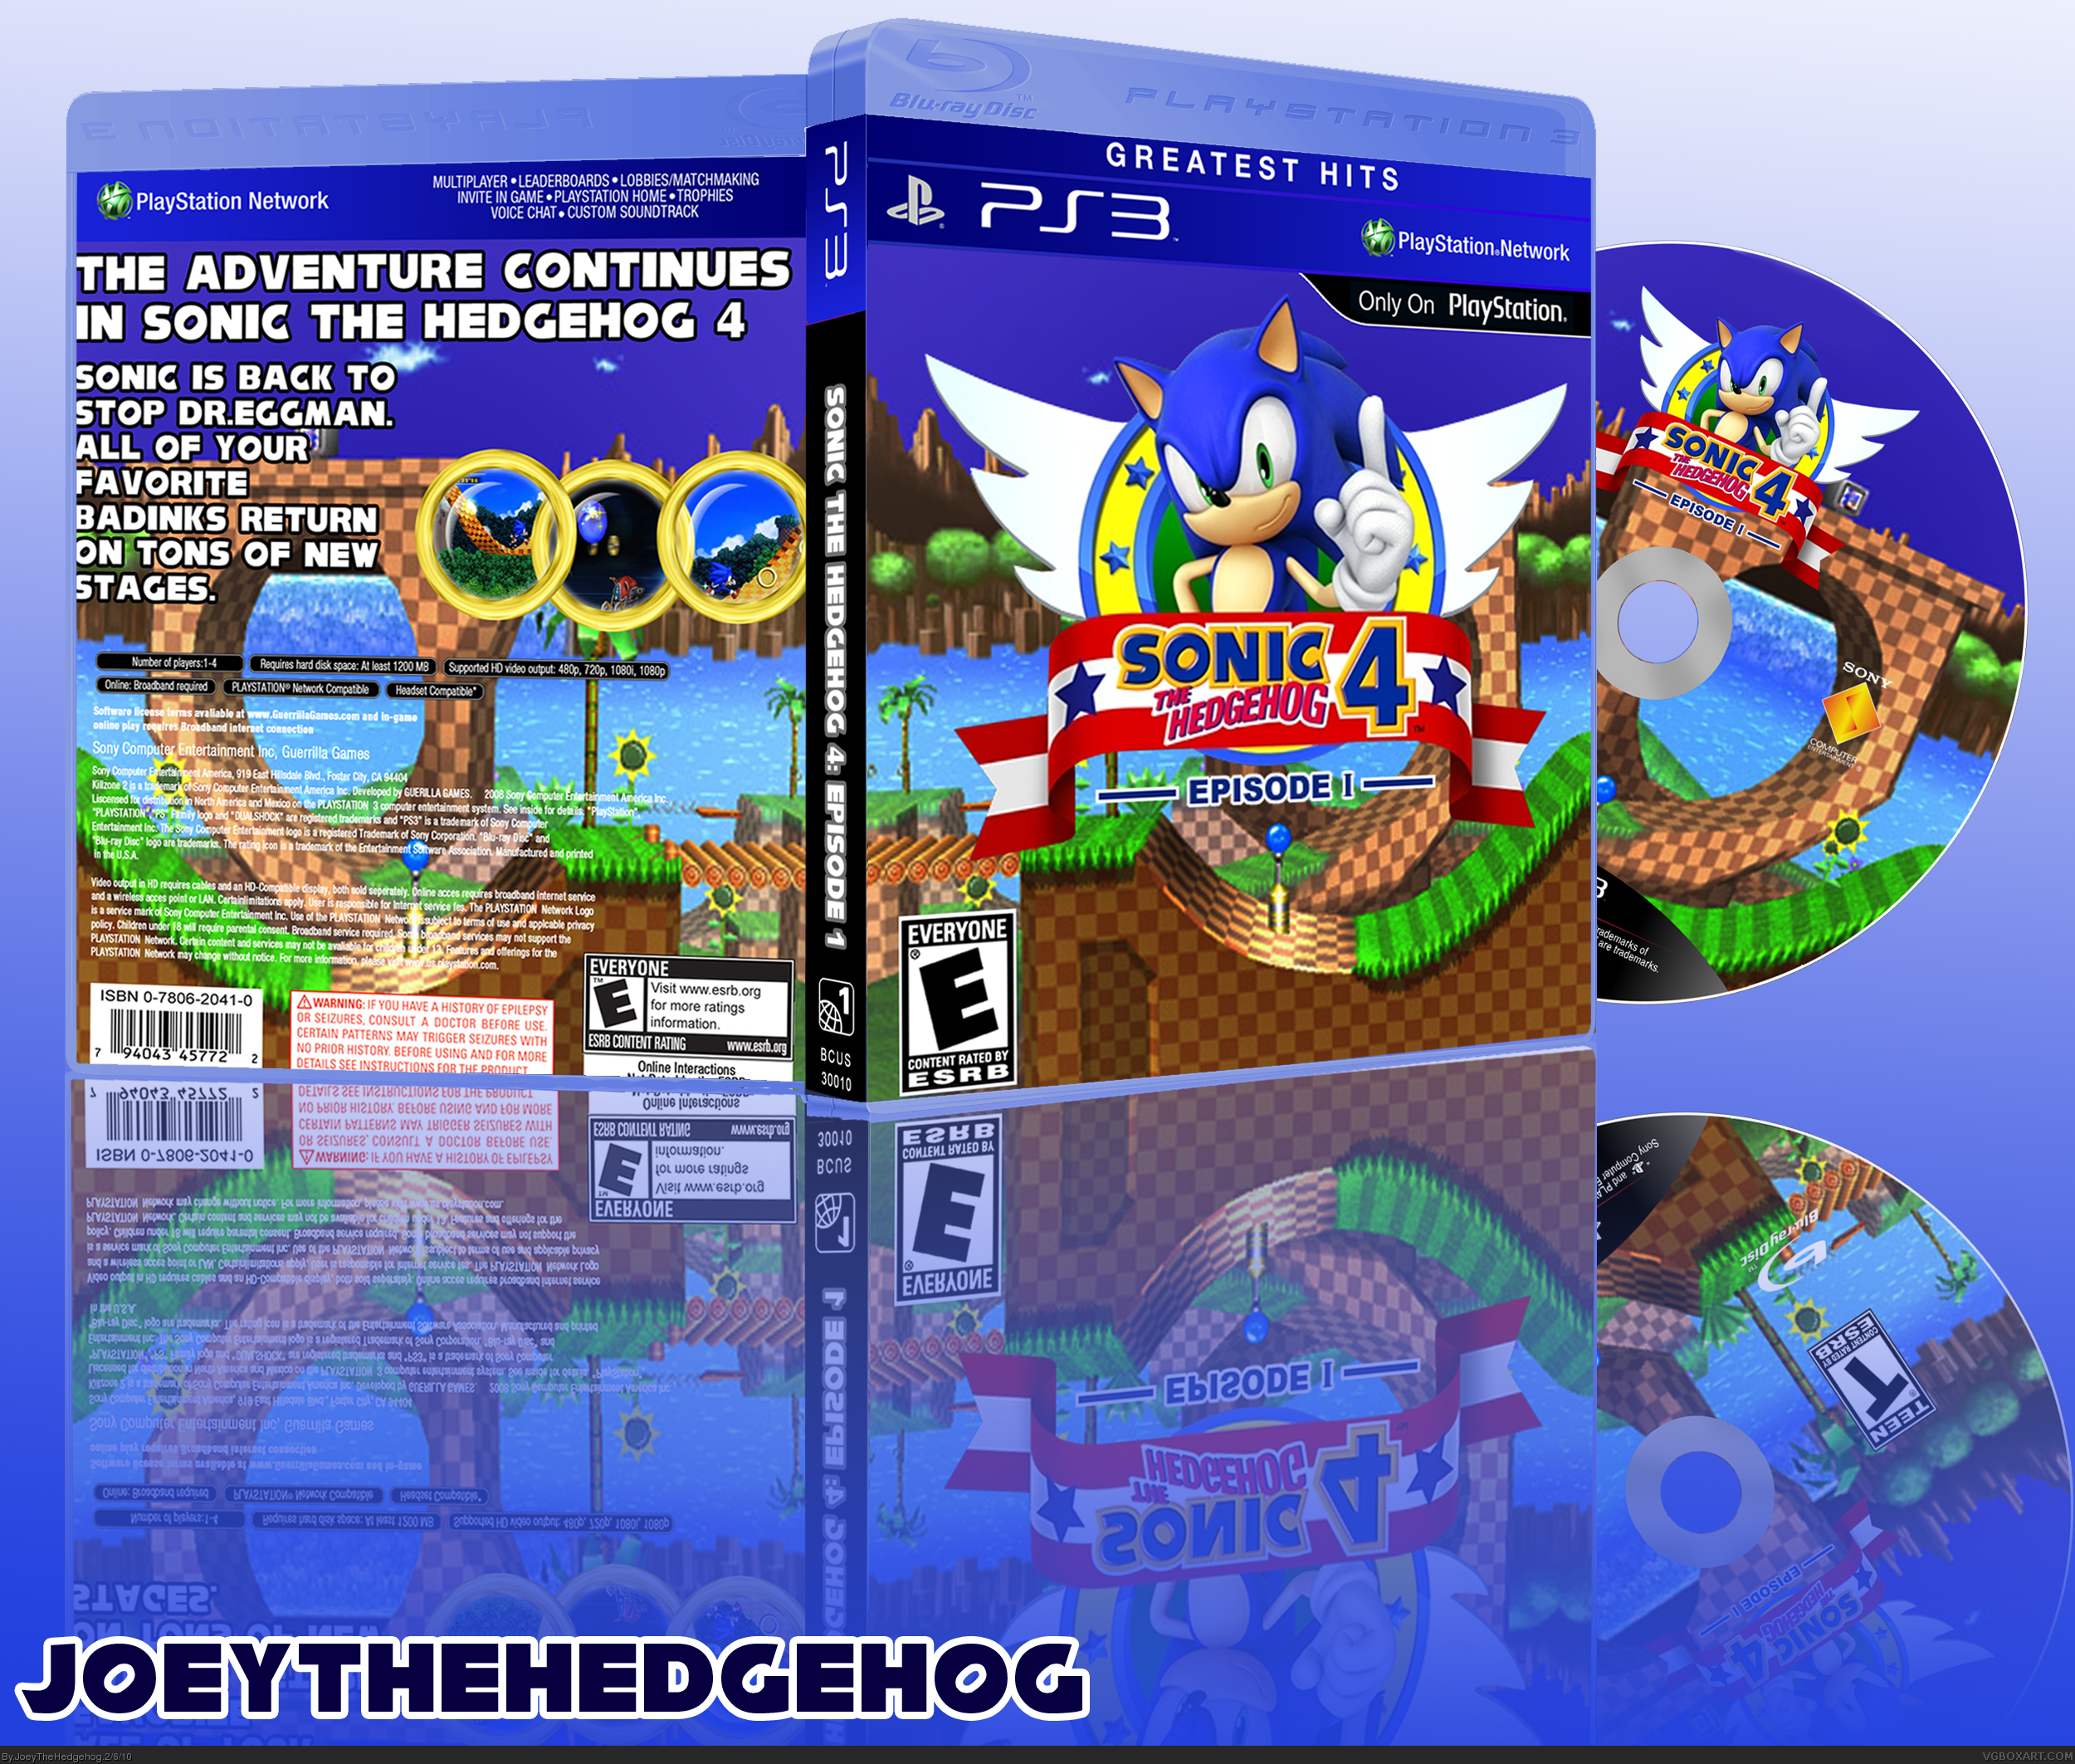 sonic the hedgehog 4 episode 1 playstation 3 box art cover by joeythehedgehog. Black Bedroom Furniture Sets. Home Design Ideas